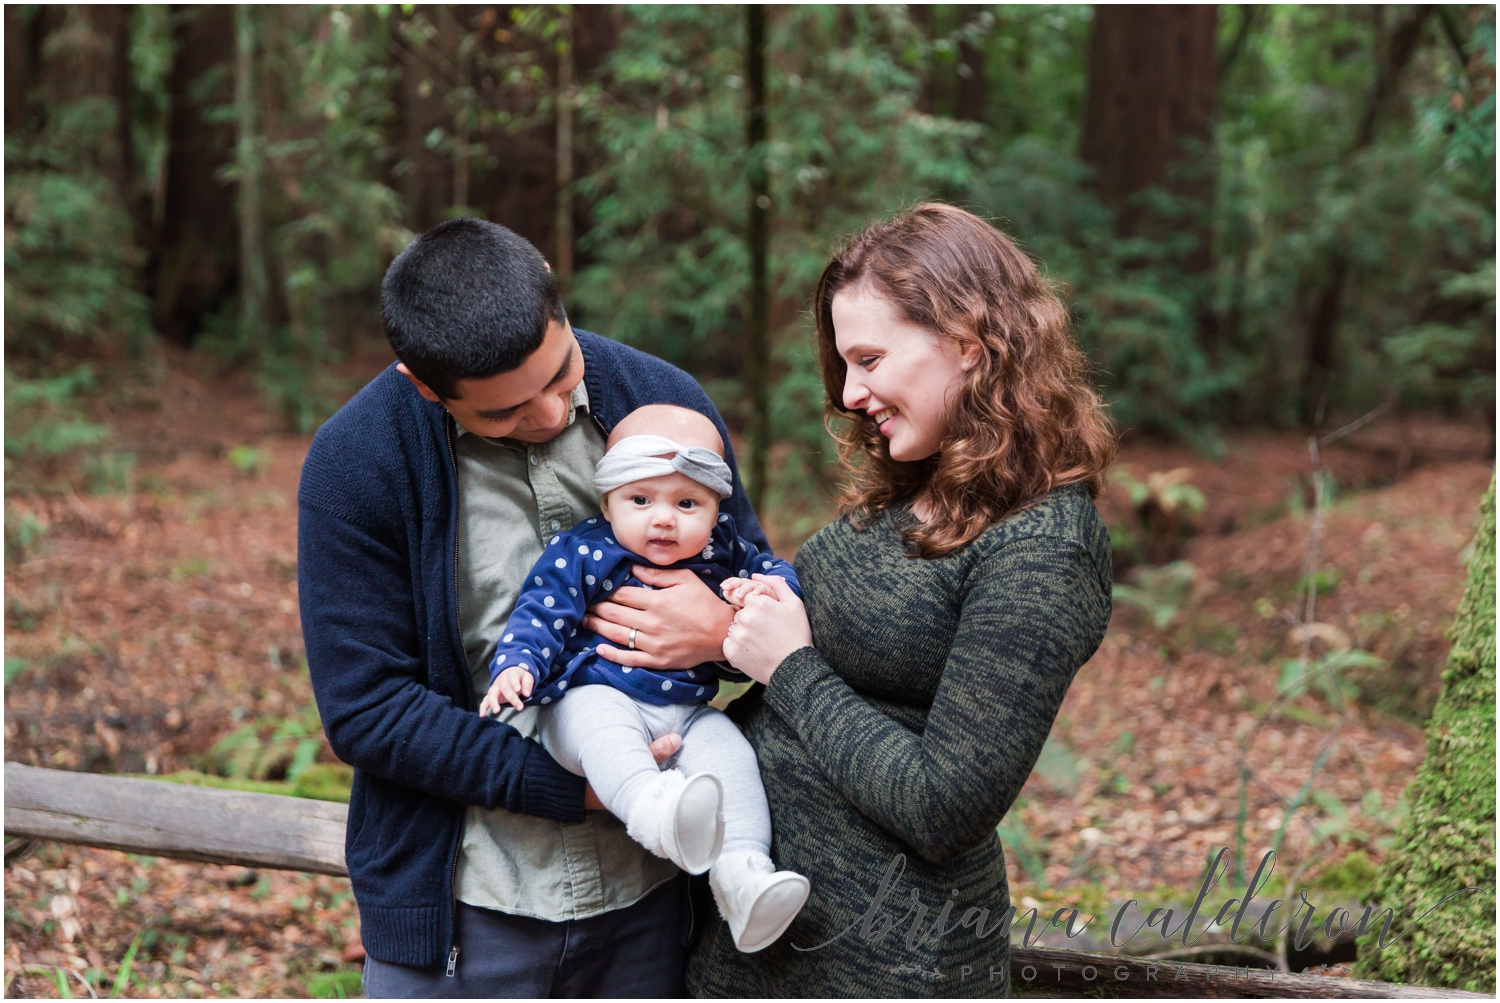 Engagement pictures at Henry Cowell Redwoods in Felton, CA by Briana Calderon Photography_1320.jpg